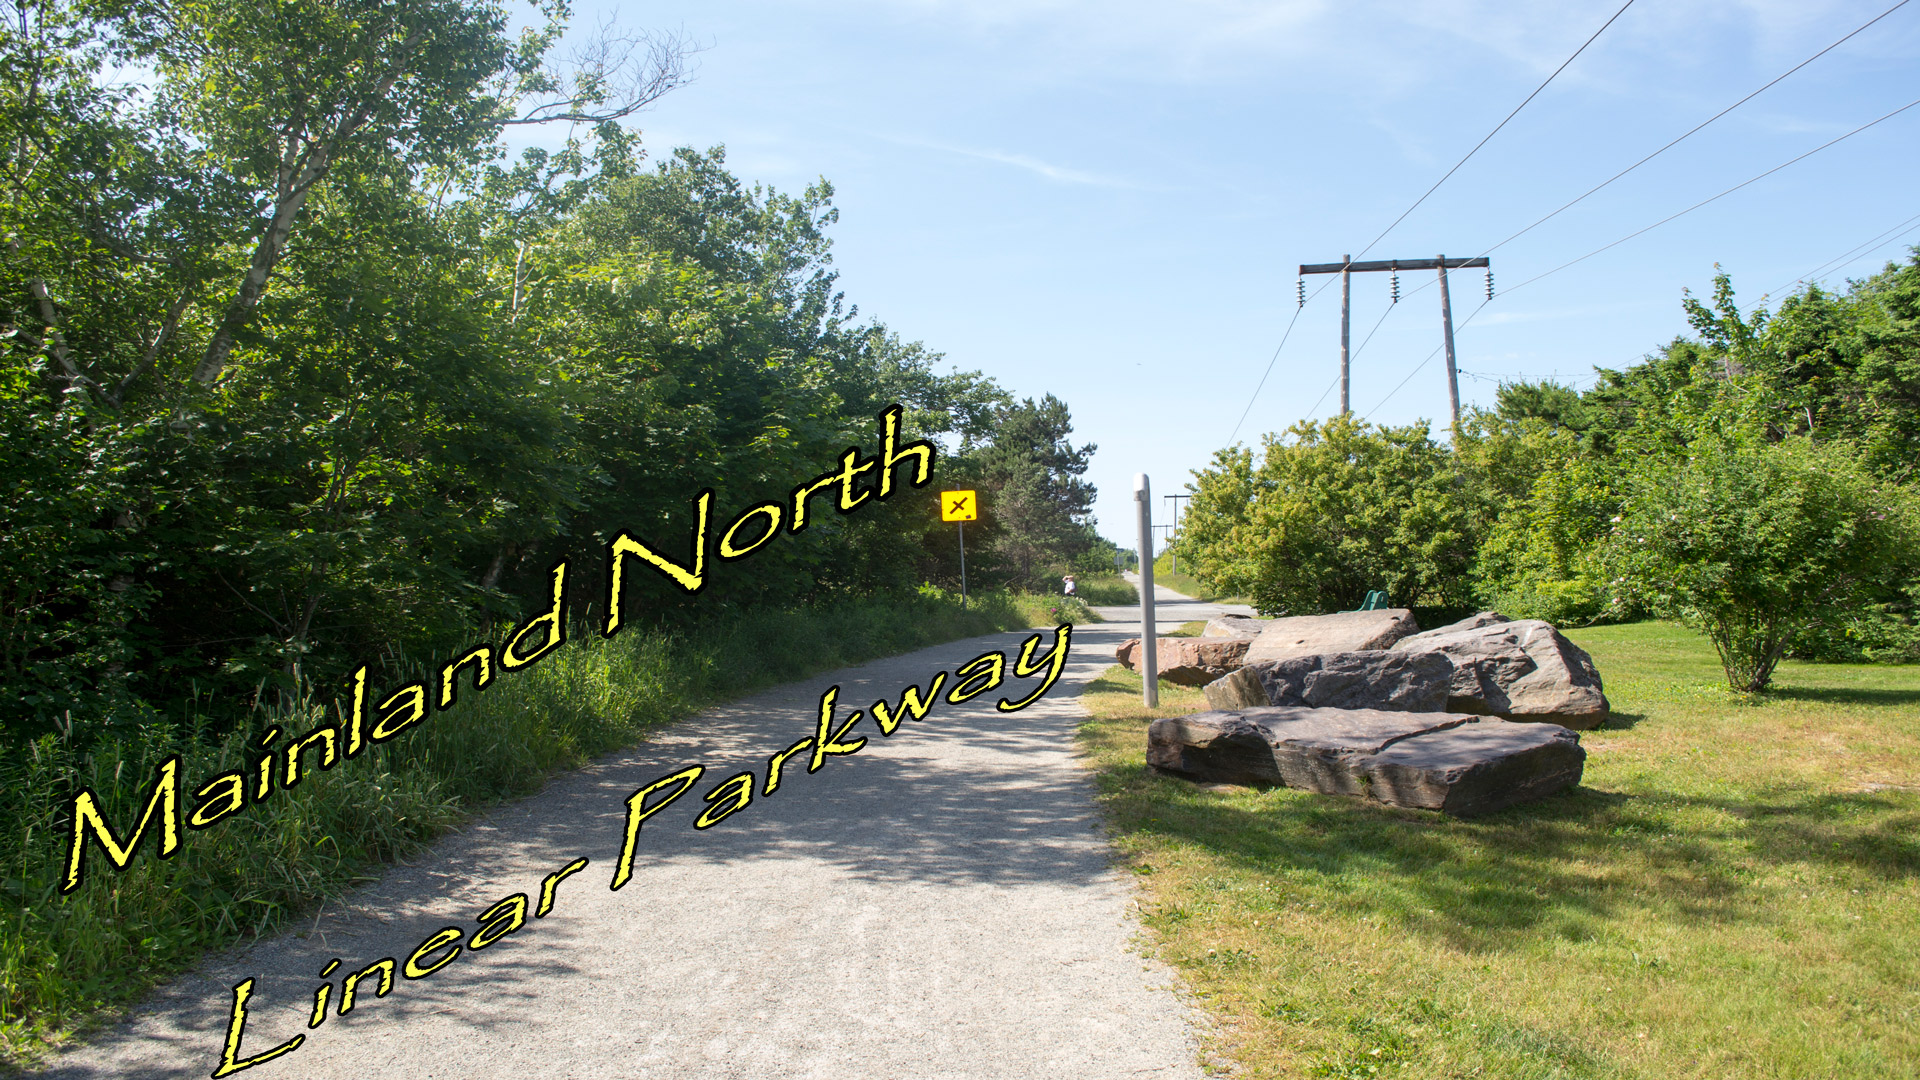 Mainland North Linear Parkway